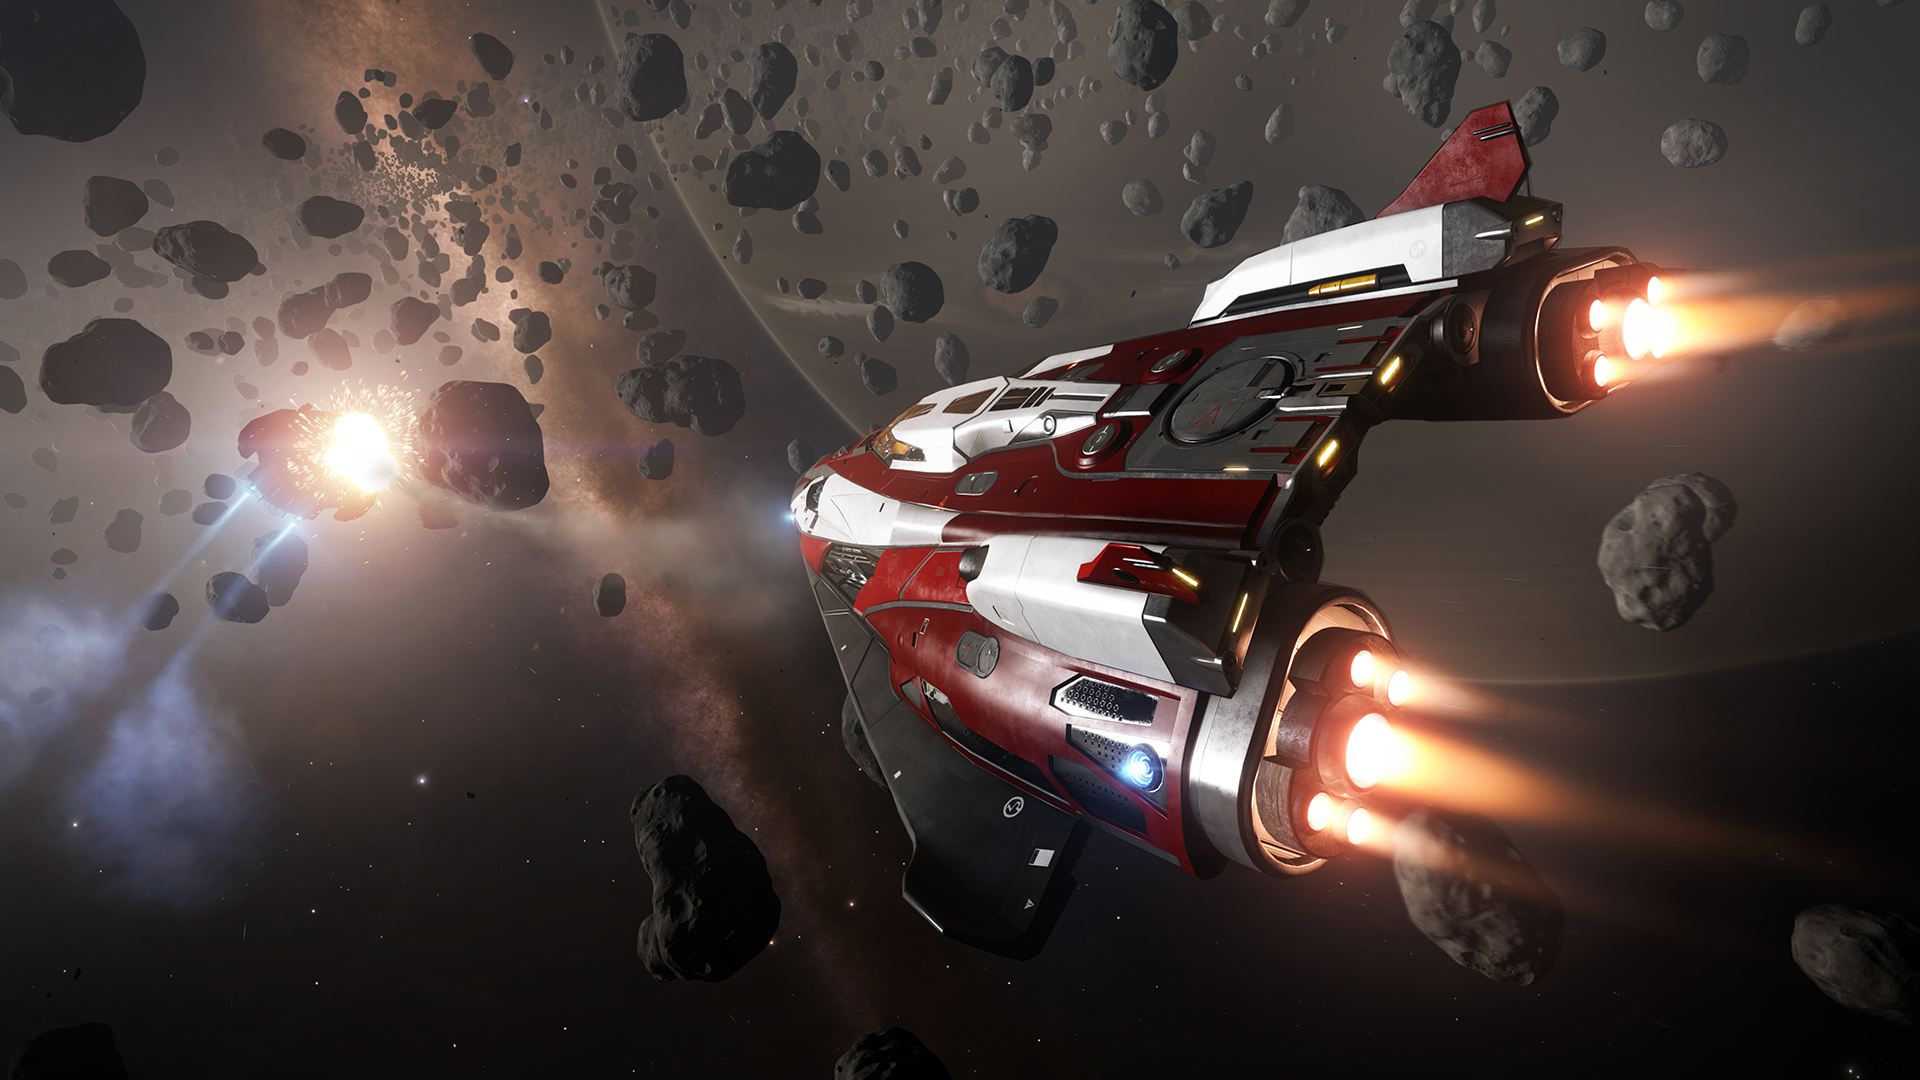 Elite Dangerous System Requirements - Can I Run It? - PCGameBenchmark